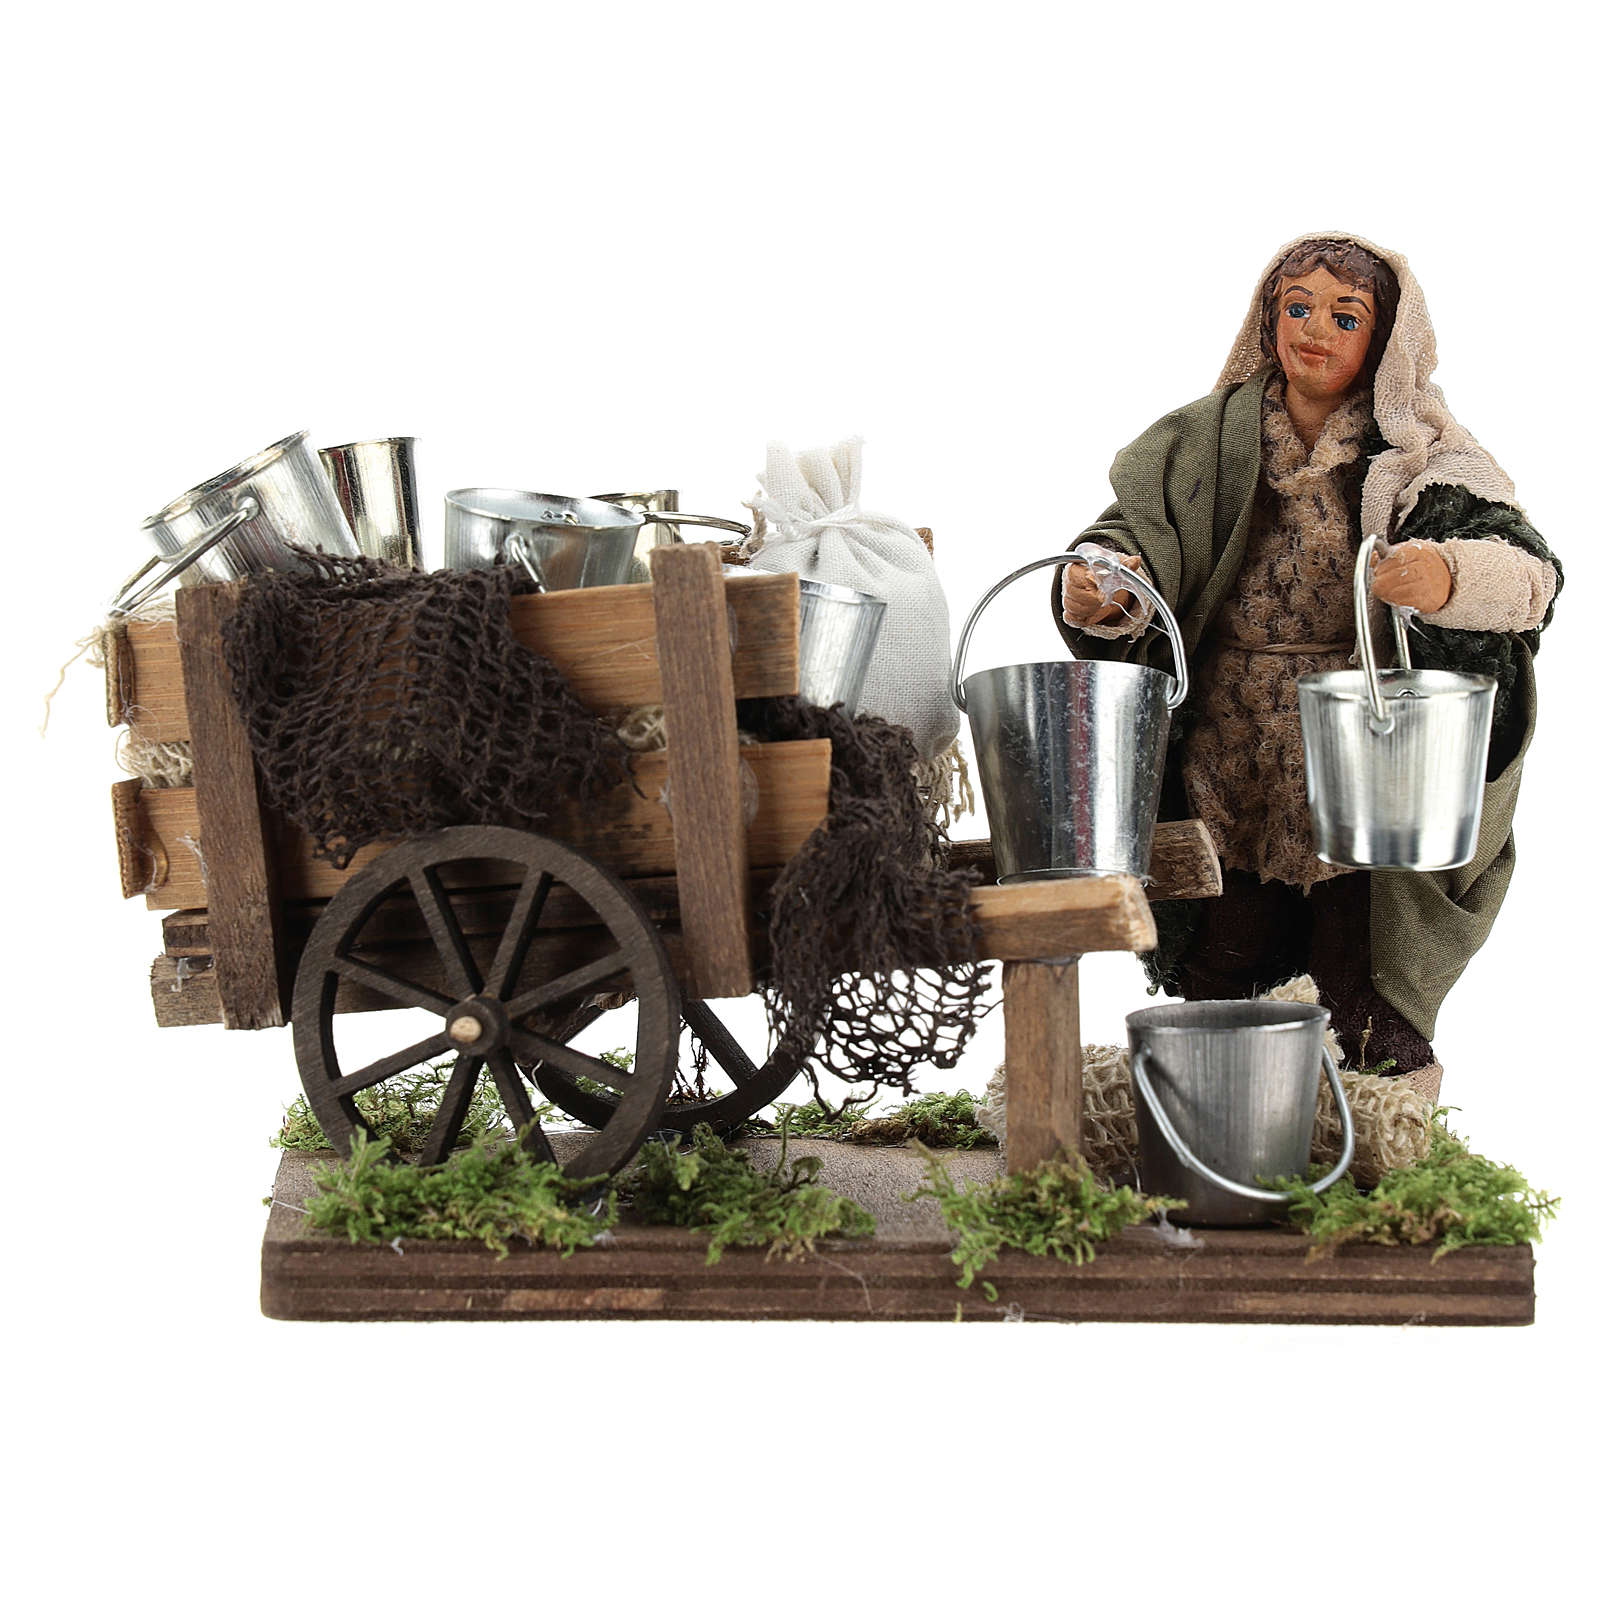 Man with cart of aluminium buckets, Neapolitan nativity figurine 10cm 4